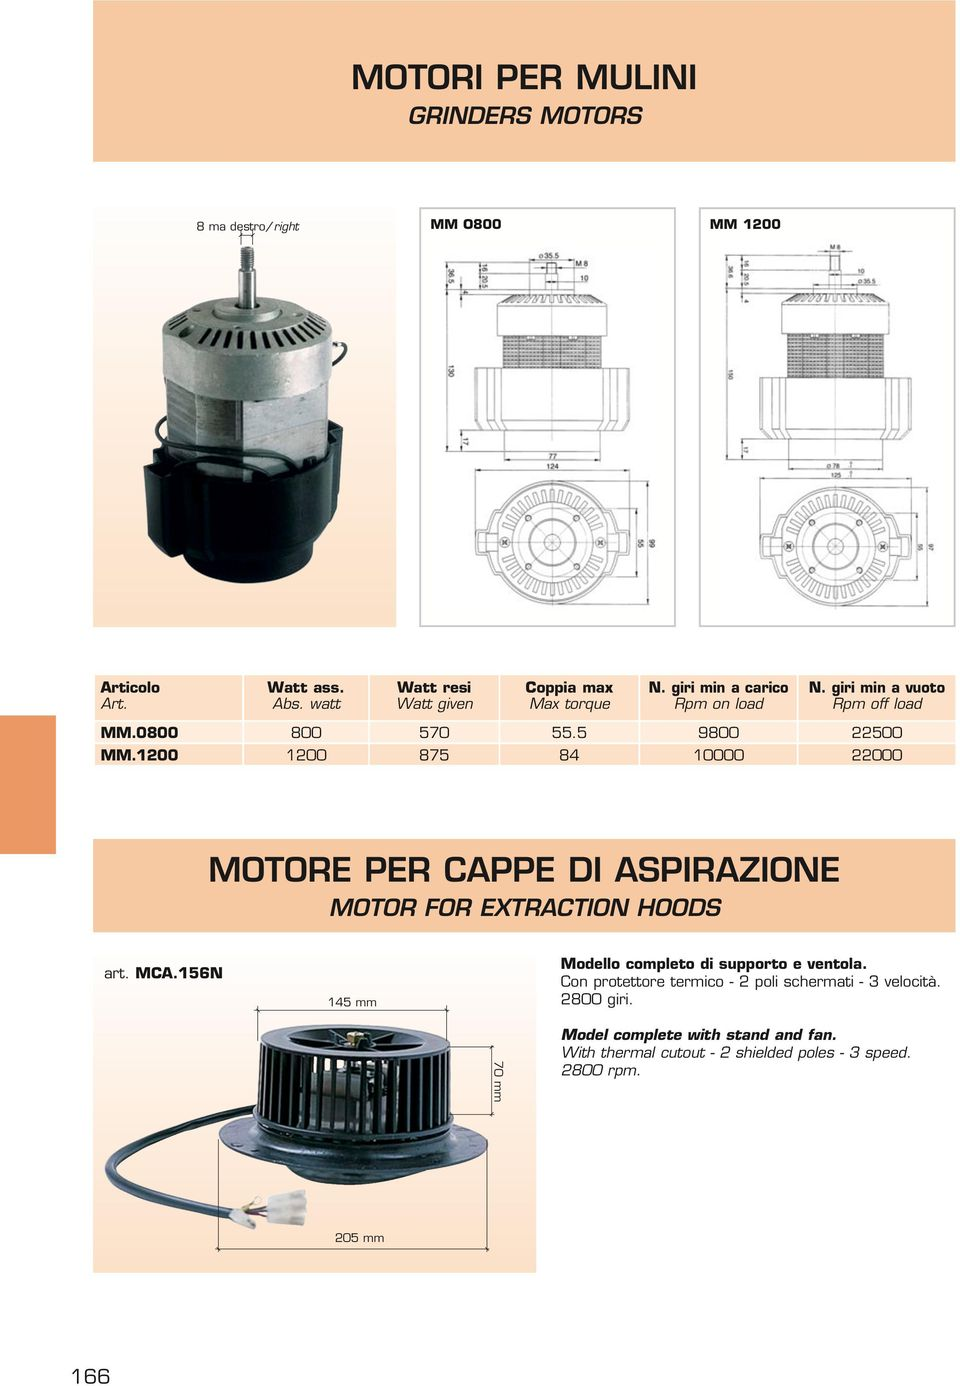 1200 1200 875 84 10000 22000 MOTORE PER CPPE DI SPIRZIONE MOTOR FOR EXTRCTION HOODS art. MC.